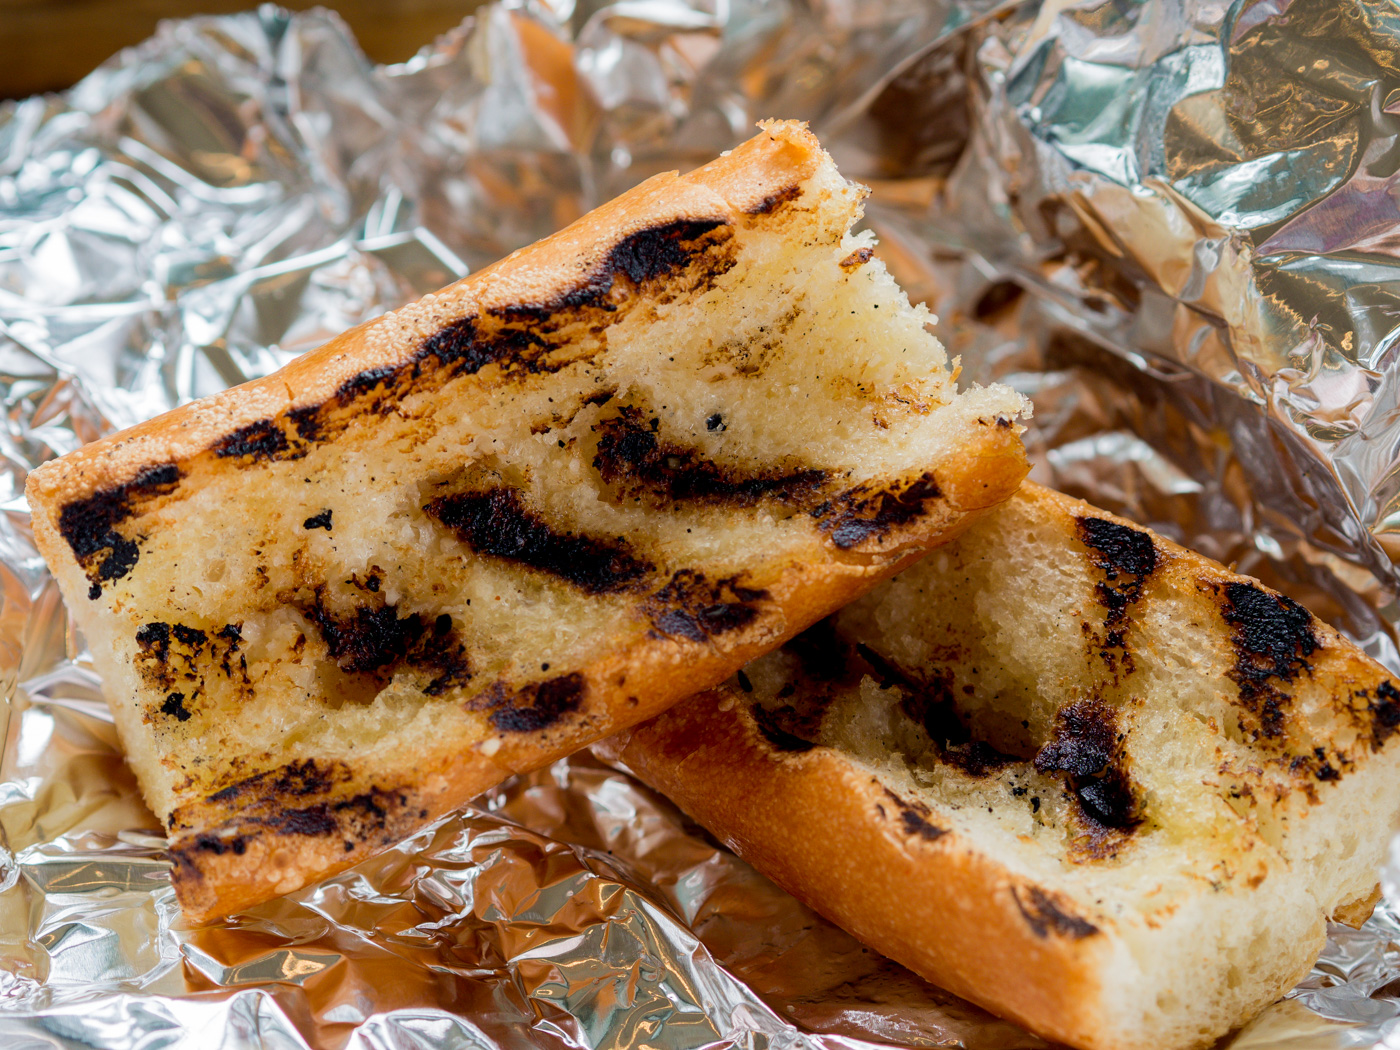 Grilled garlic bread from the Market Grill at Pike Place Seattle